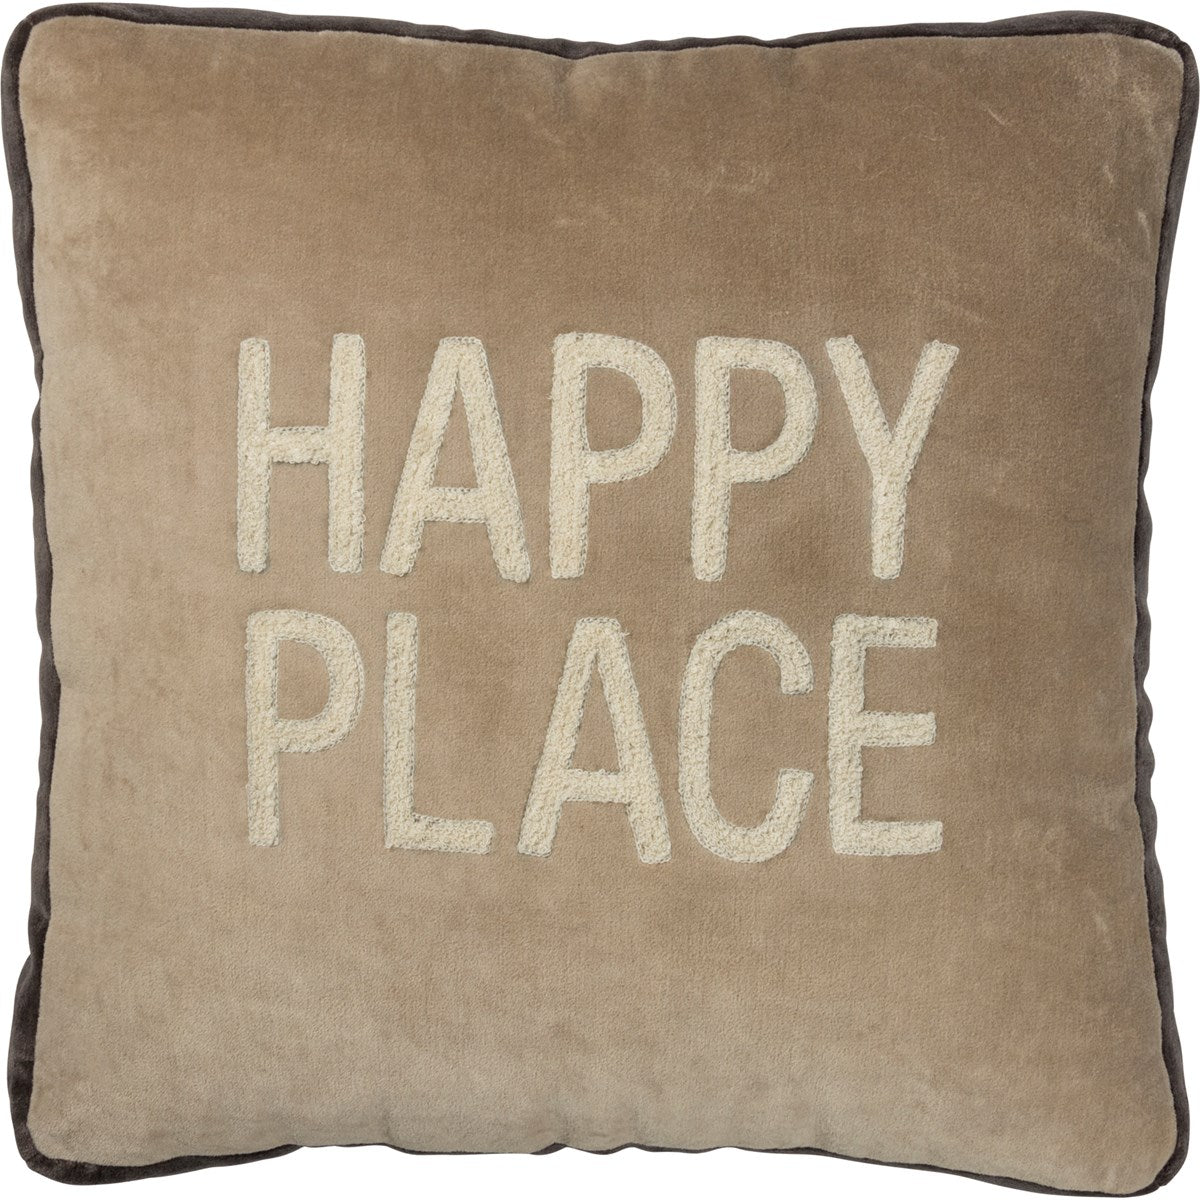 Brown Happy Place Pillow